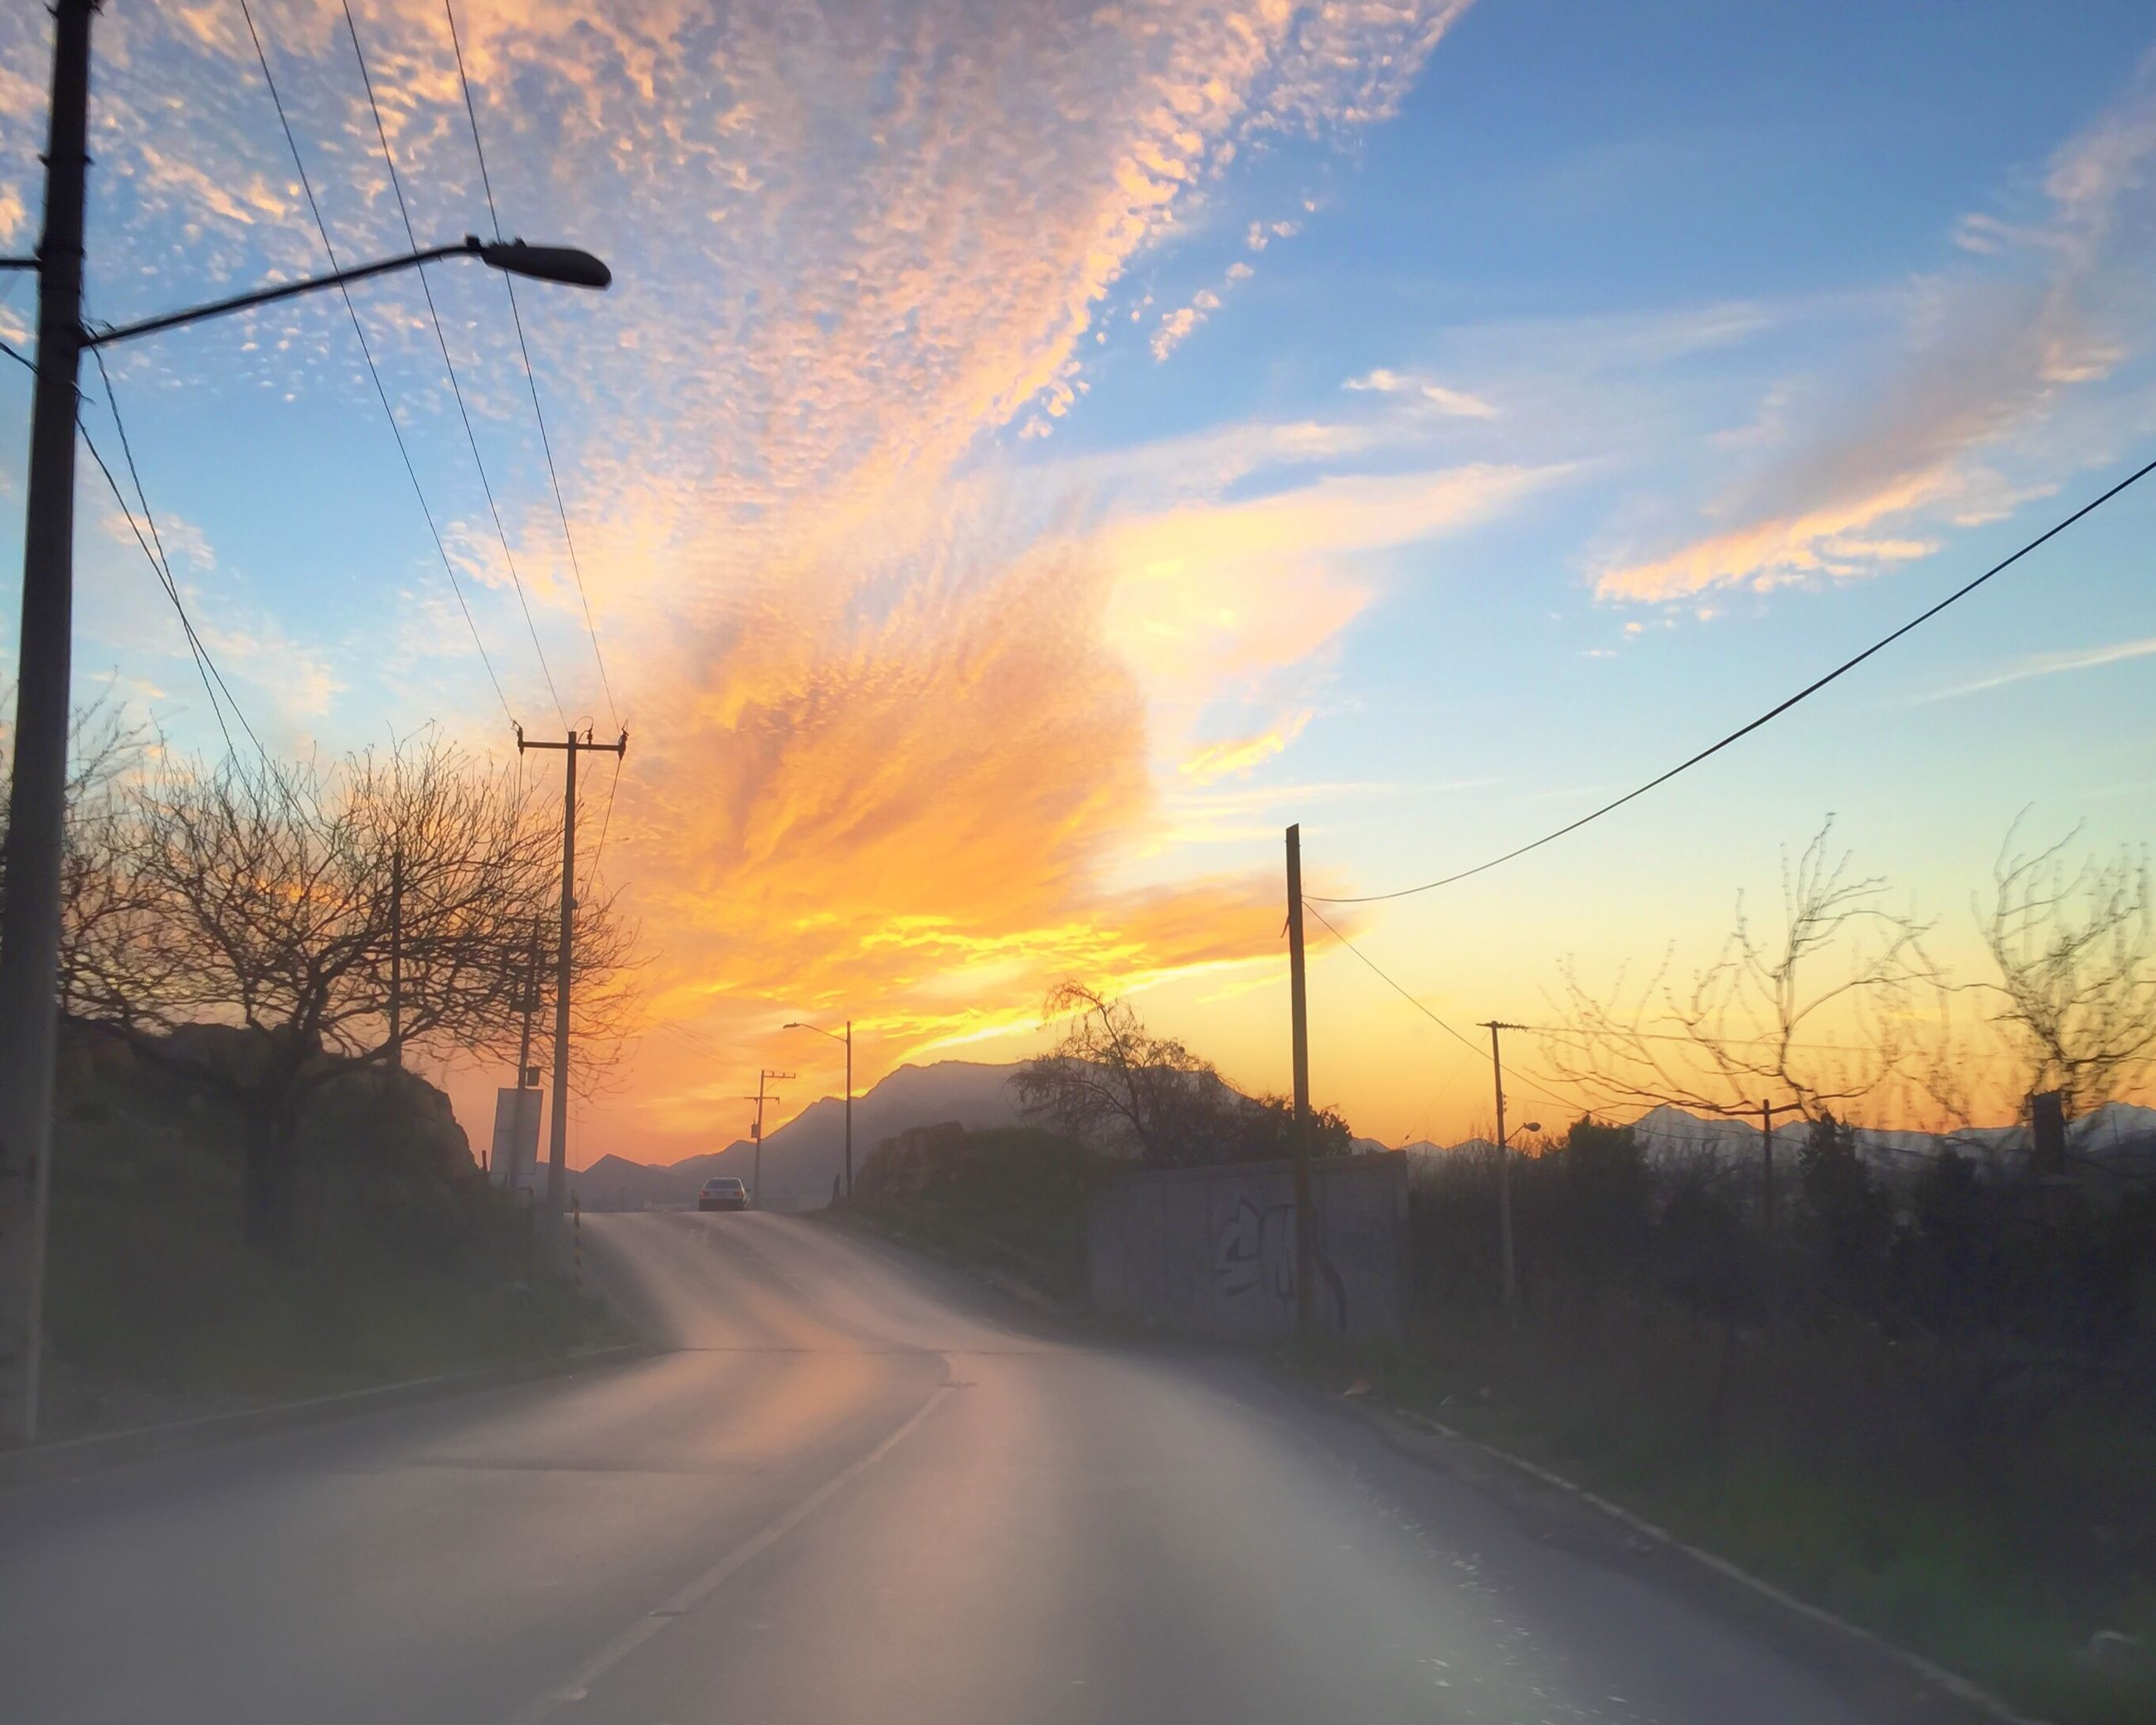 sunset, the way forward, transportation, road, sky, diminishing perspective, tree, vanishing point, cloud - sky, orange color, road marking, country road, electricity pylon, silhouette, tranquility, scenics, nature, empty road, beauty in nature, tranquil scene